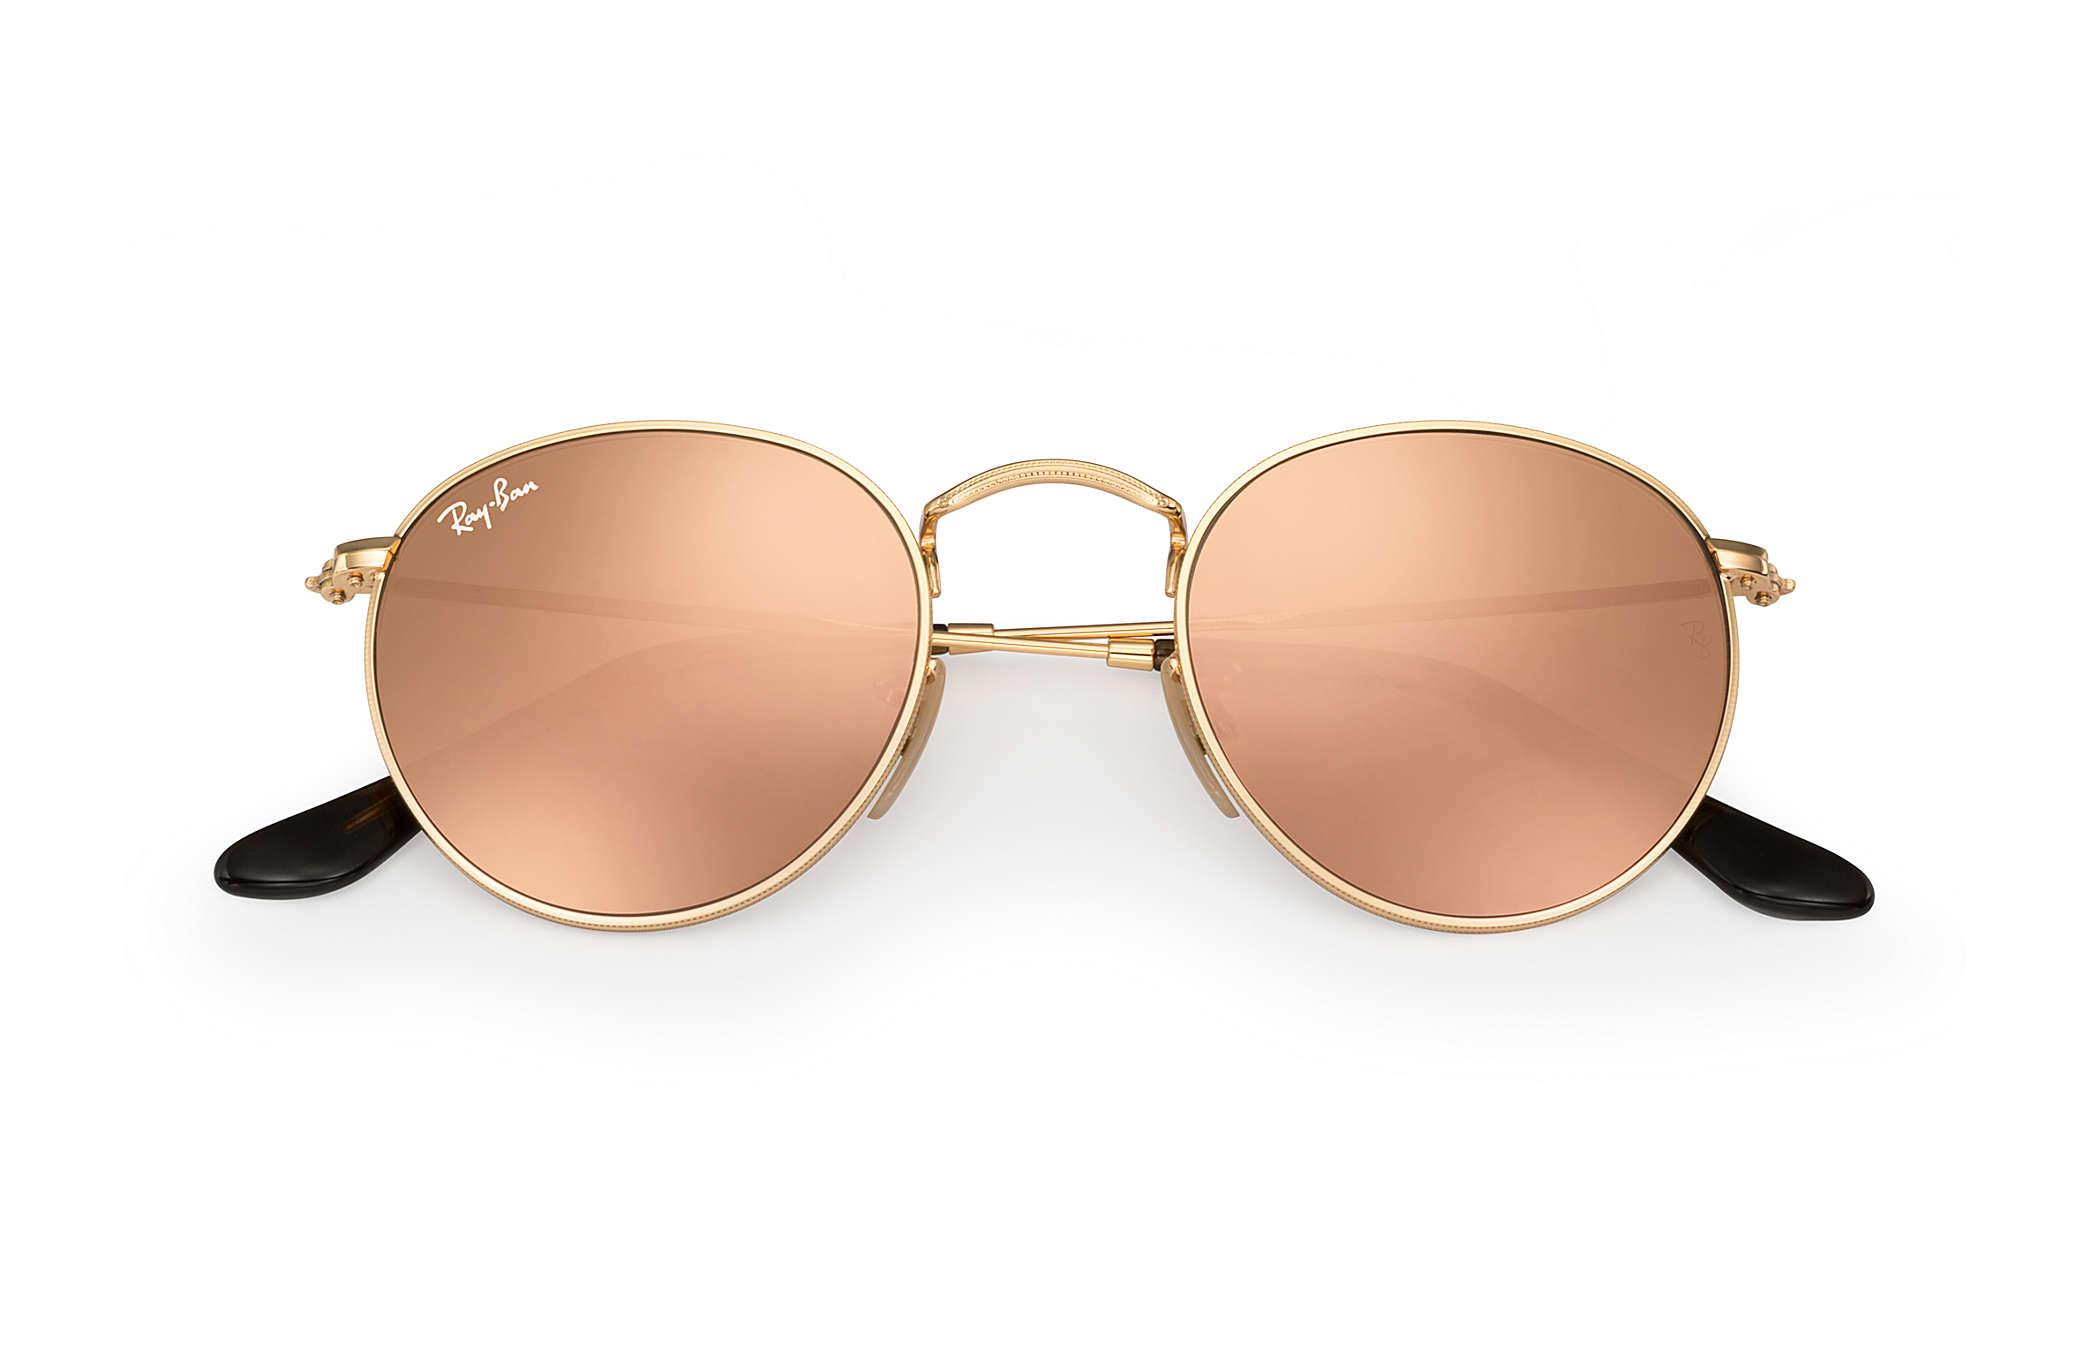 33074aceed3 Ray-Ban - Multicolor Round Flat Lenses - Lyst. View fullscreen